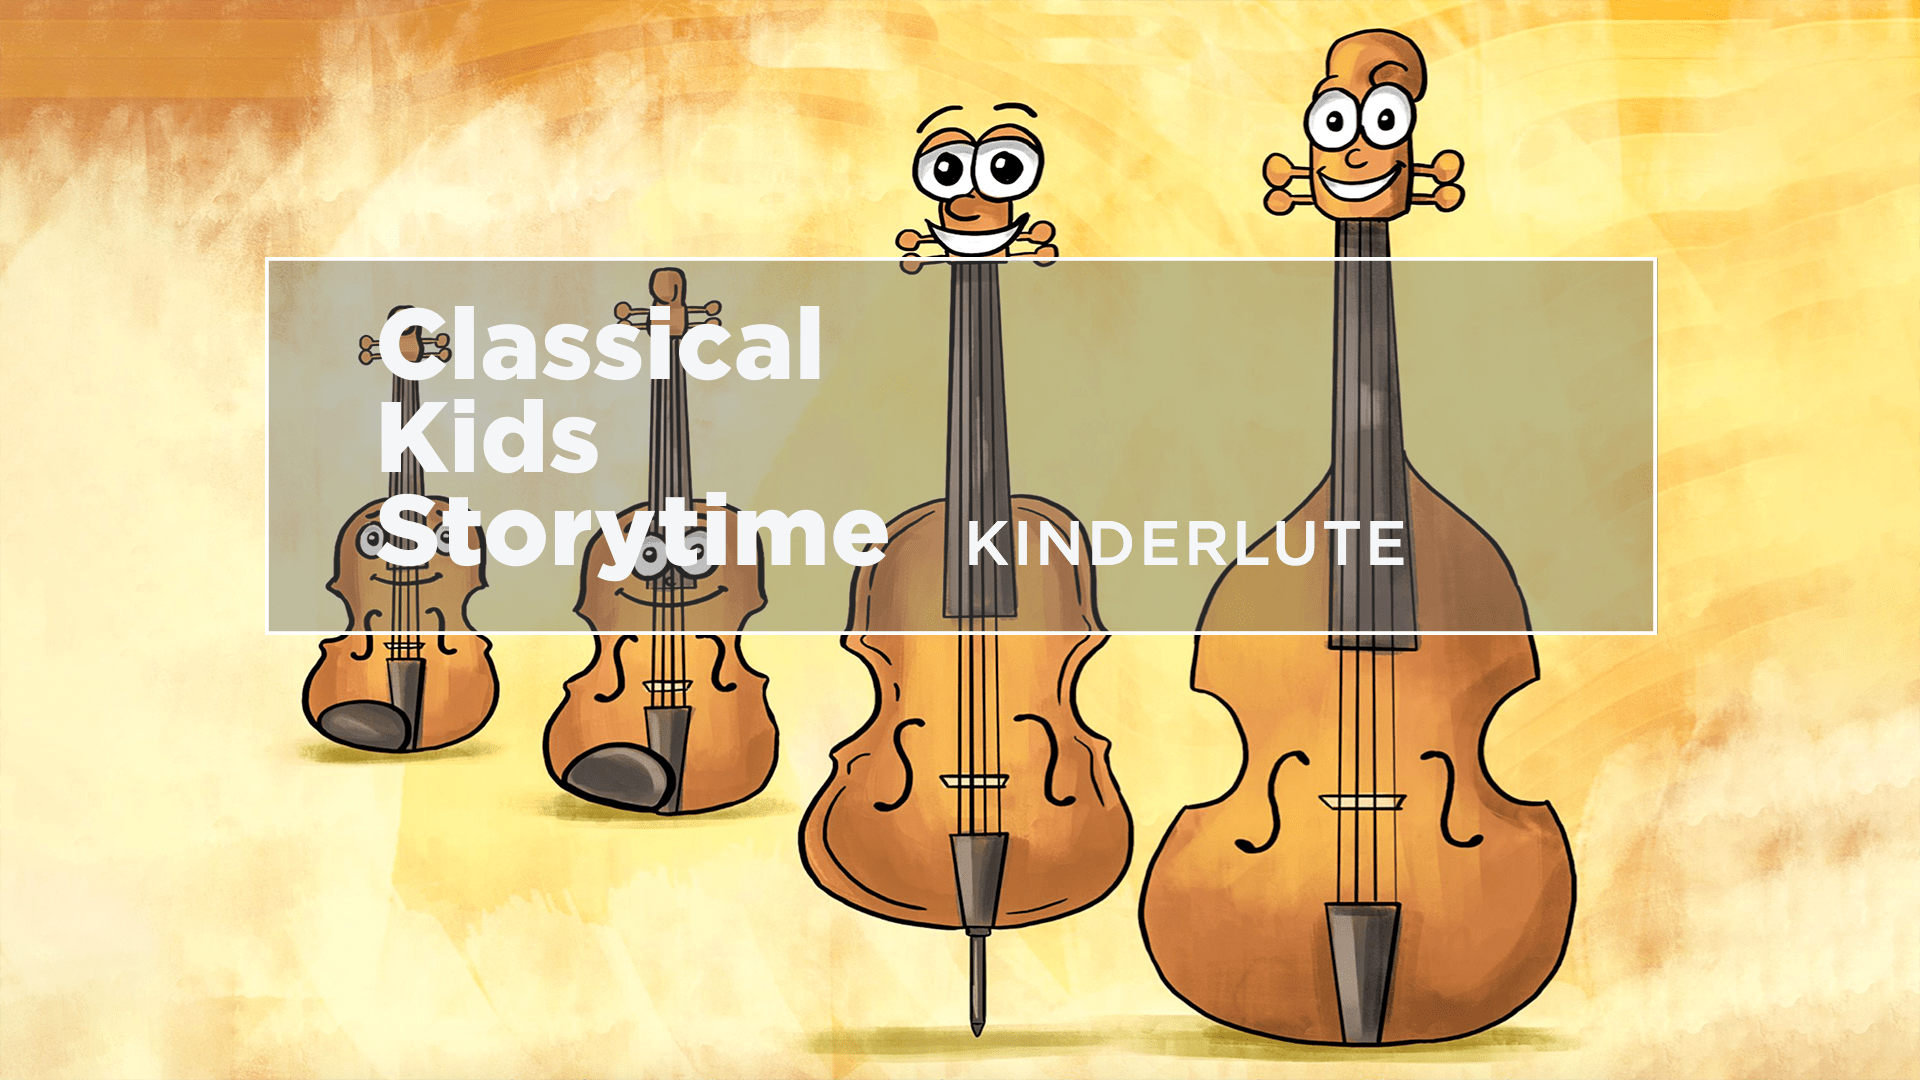 Classical Kids Storytime: Kinderlute-20